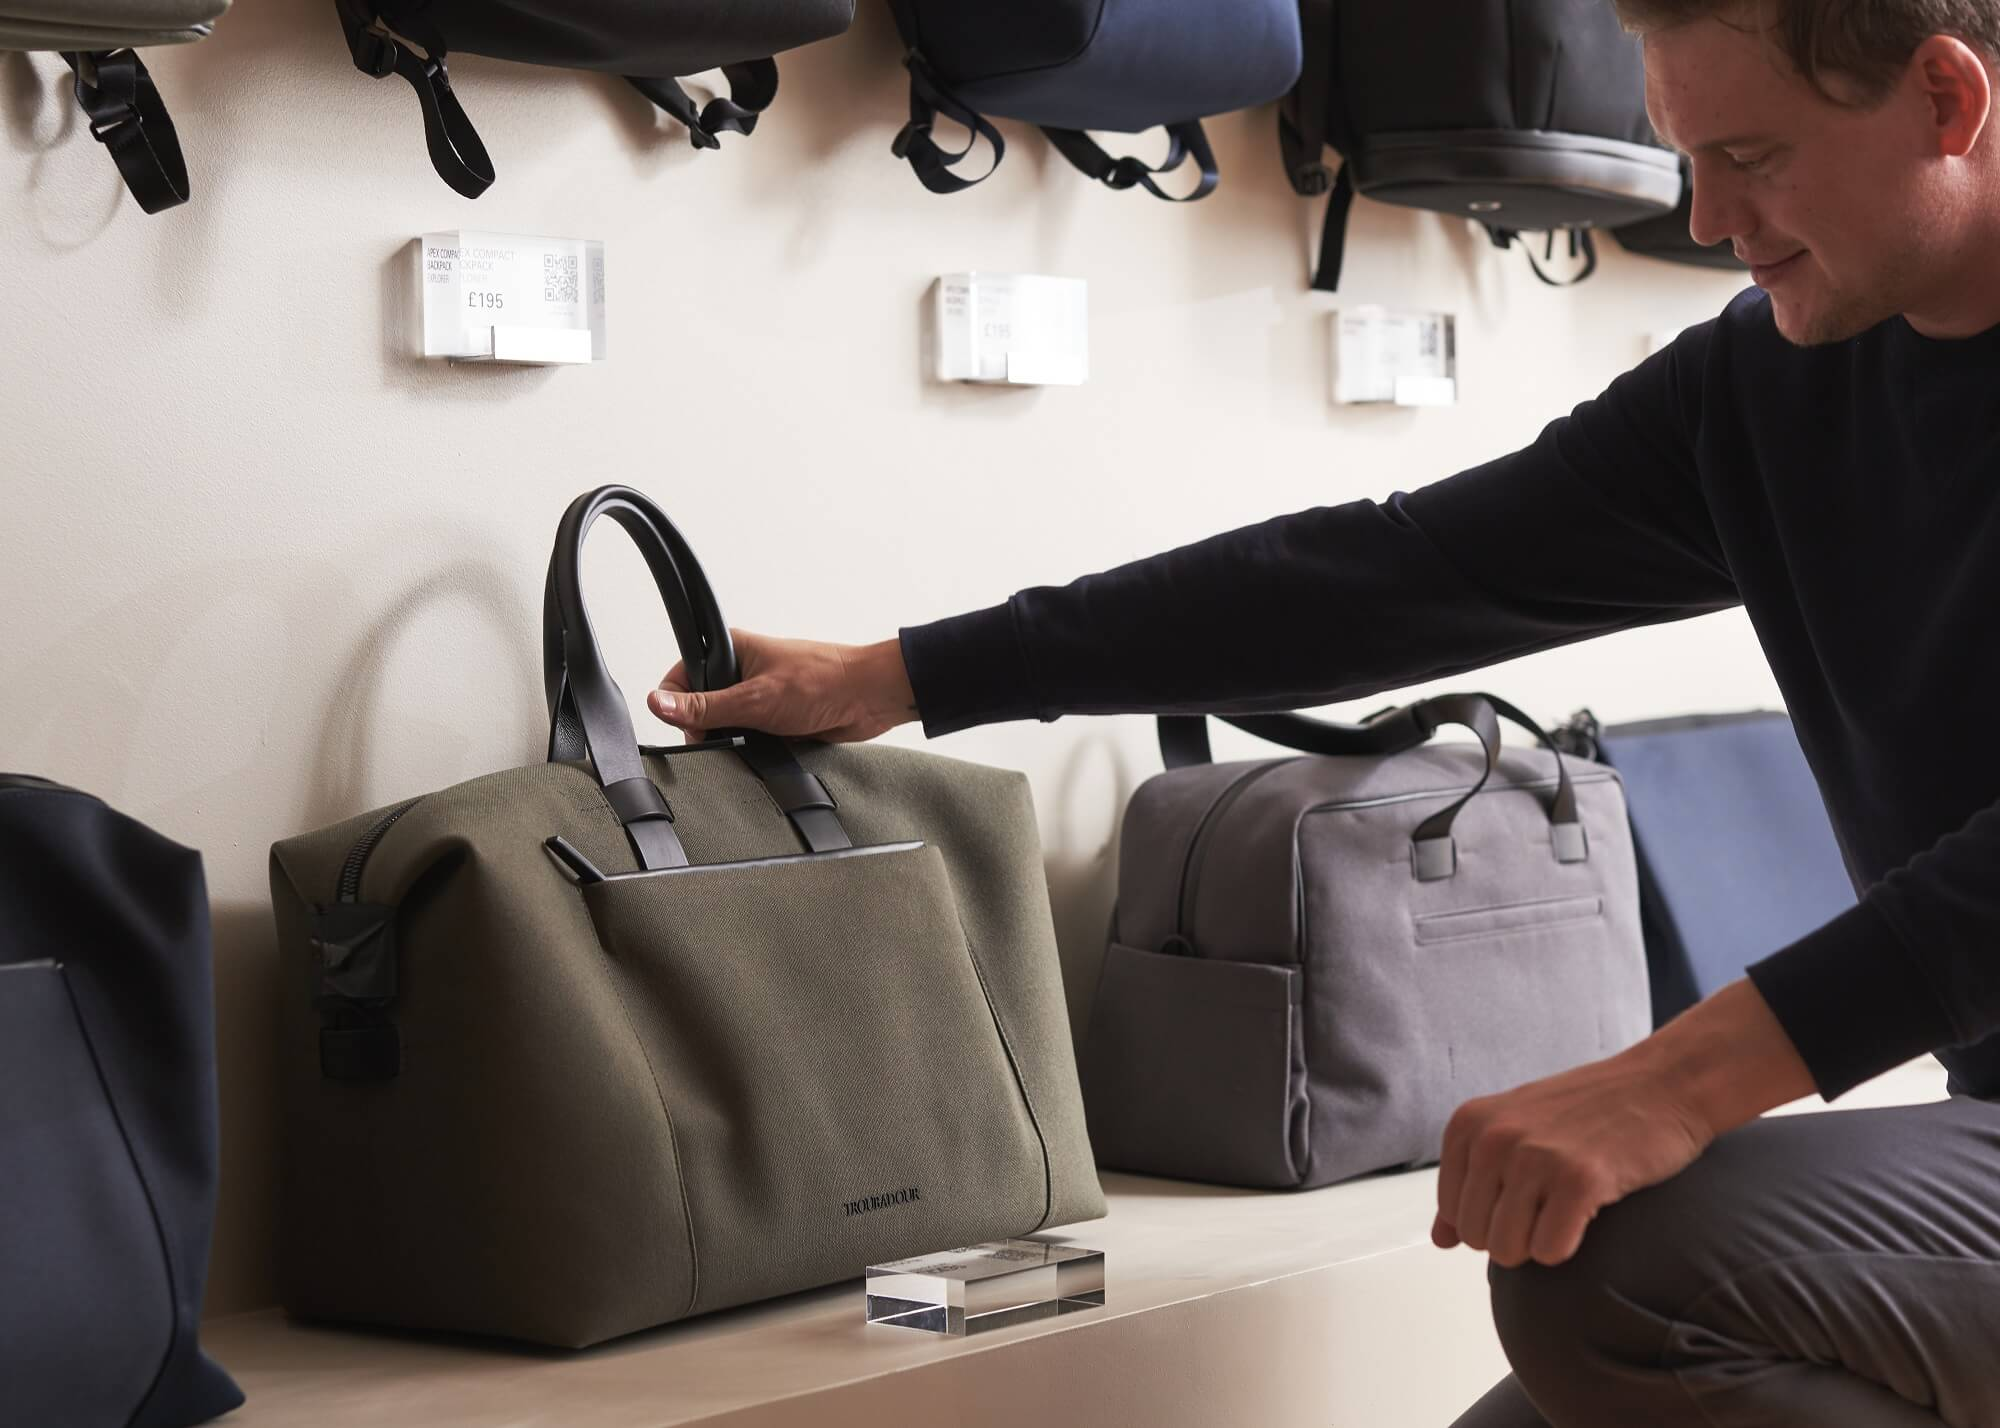 DO YOU HAVE A BAG THAT NEEDS FIXING?